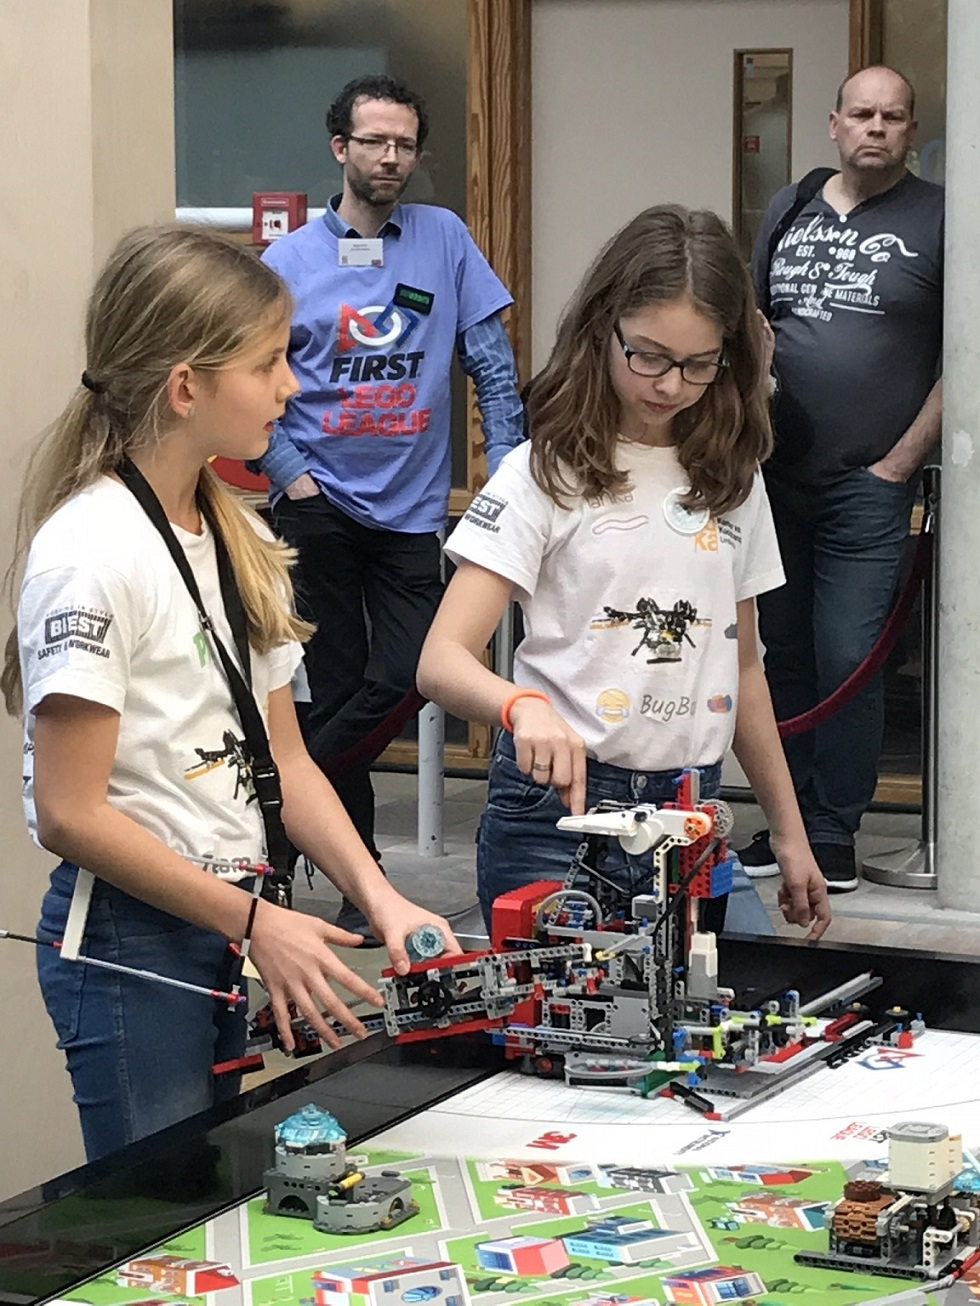 Drie Limburgse teams schitteren in Beneluxfinale FIRST LEGO League